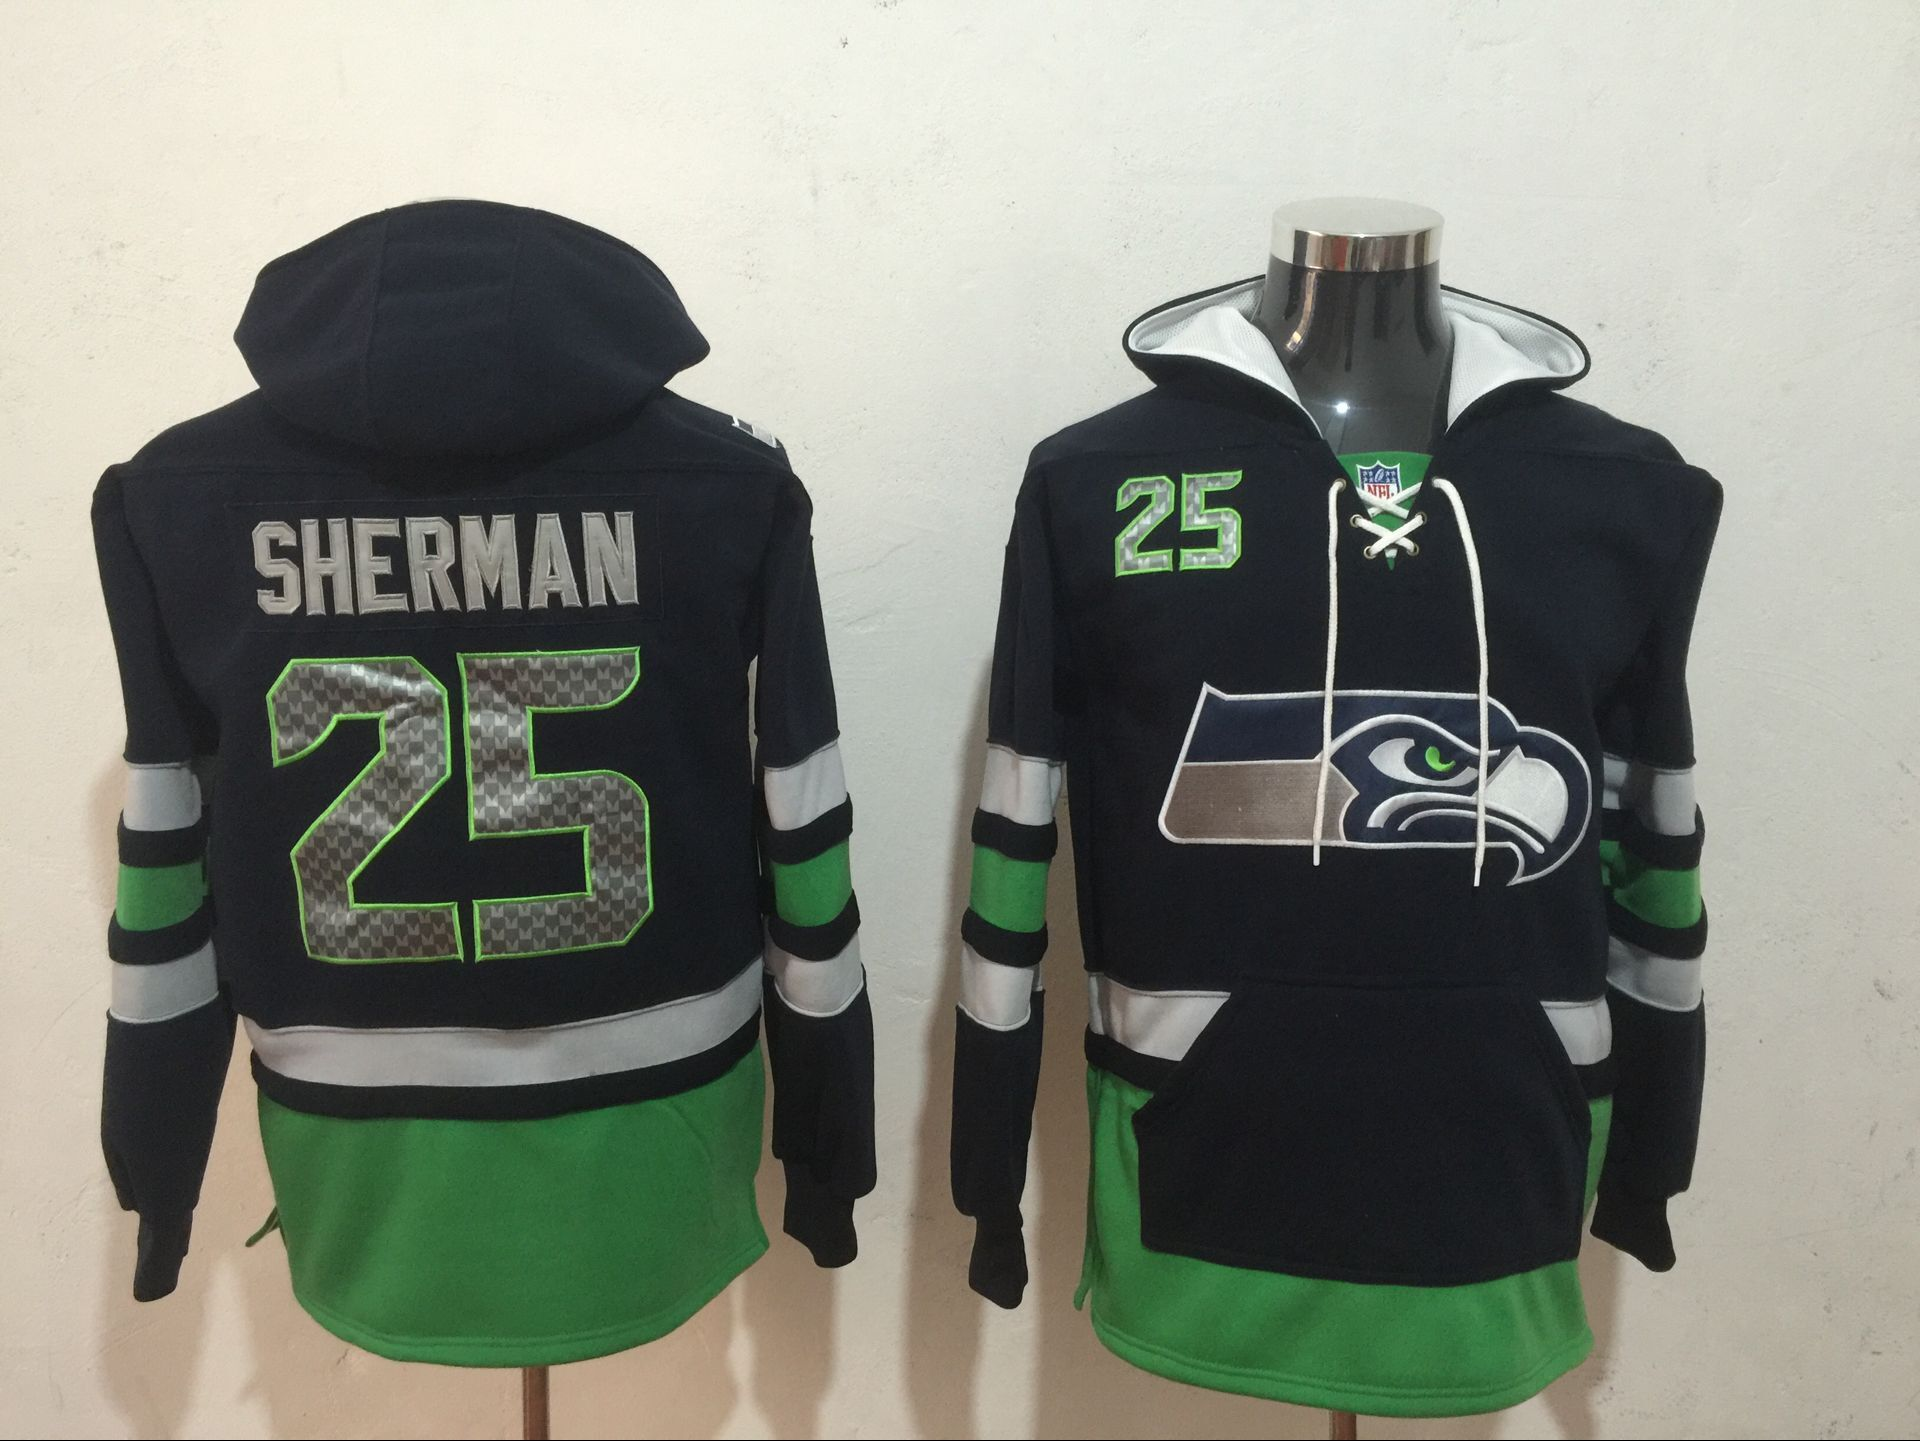 Men NFL Nike Seattle Seahawks 25 Sherman black Sweatshirts